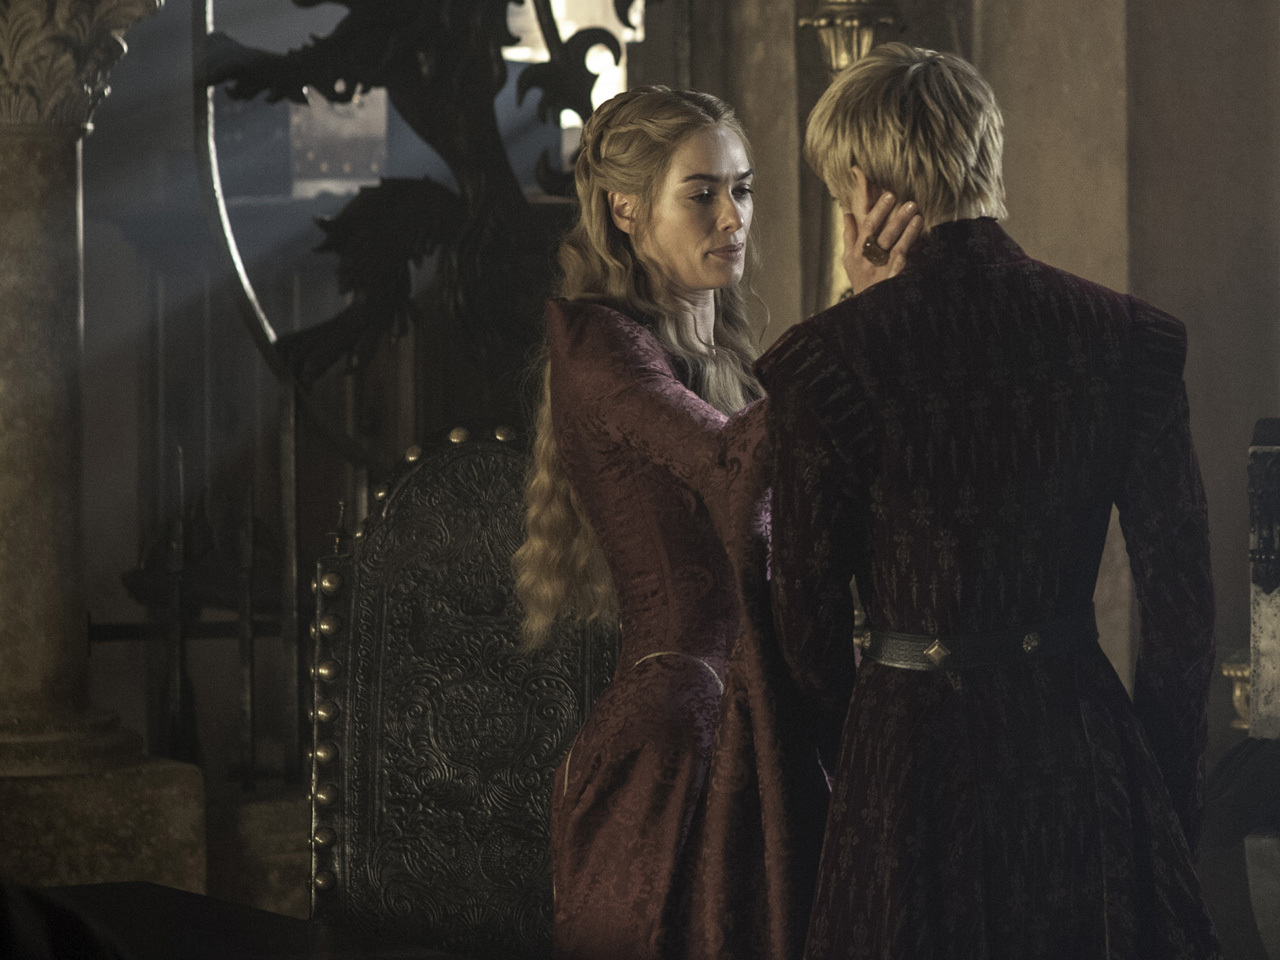 98 game of thrones - photo #6